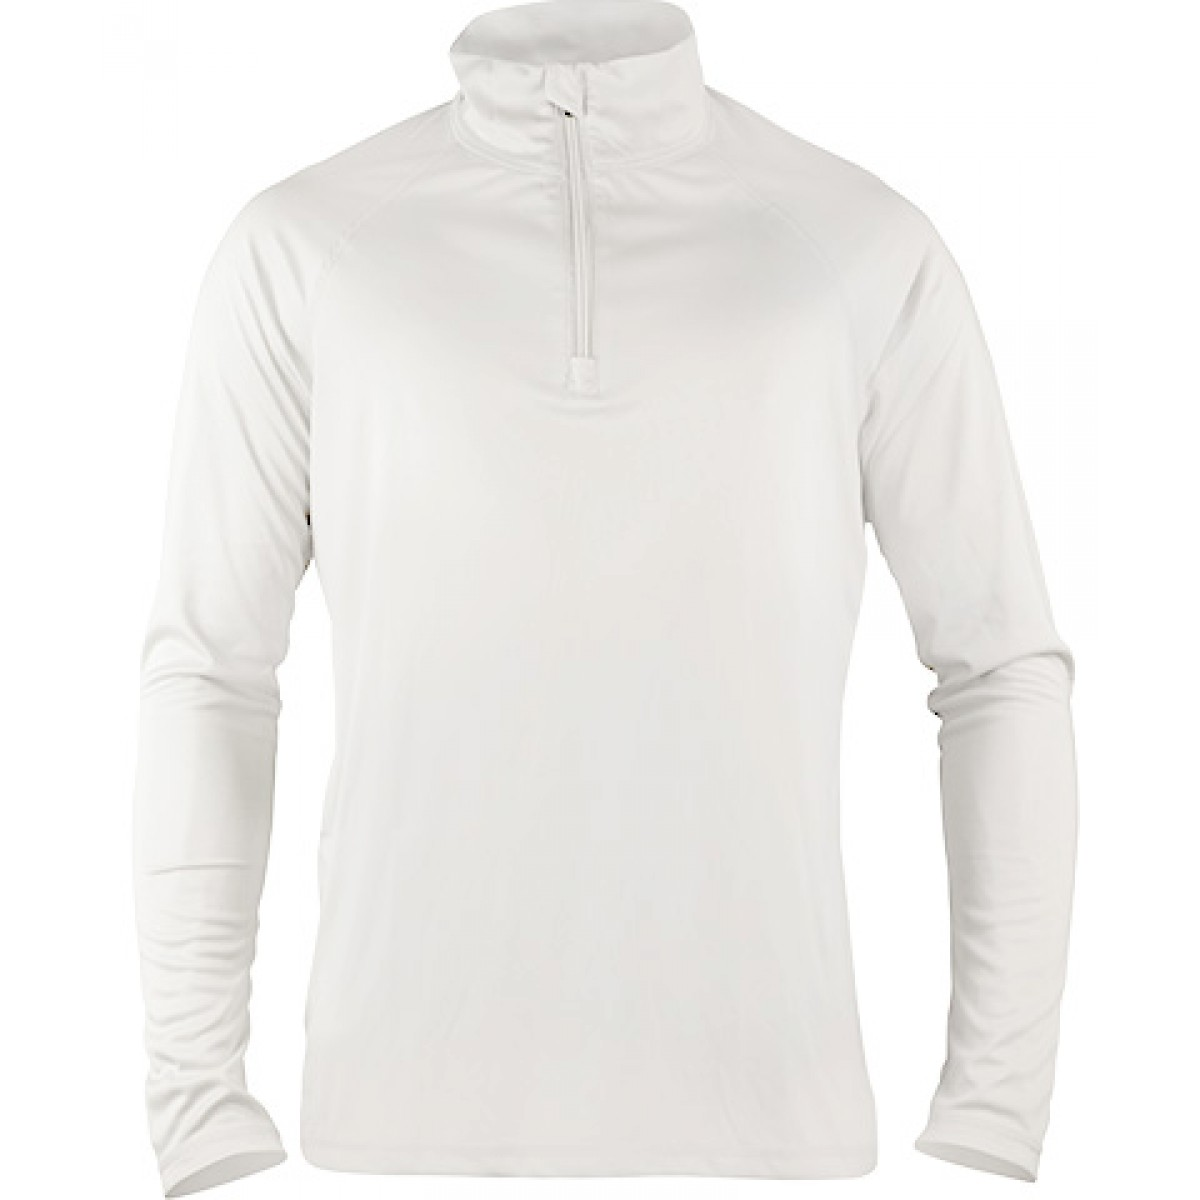 Quarter-Zip Lightweight Pullover-White-M